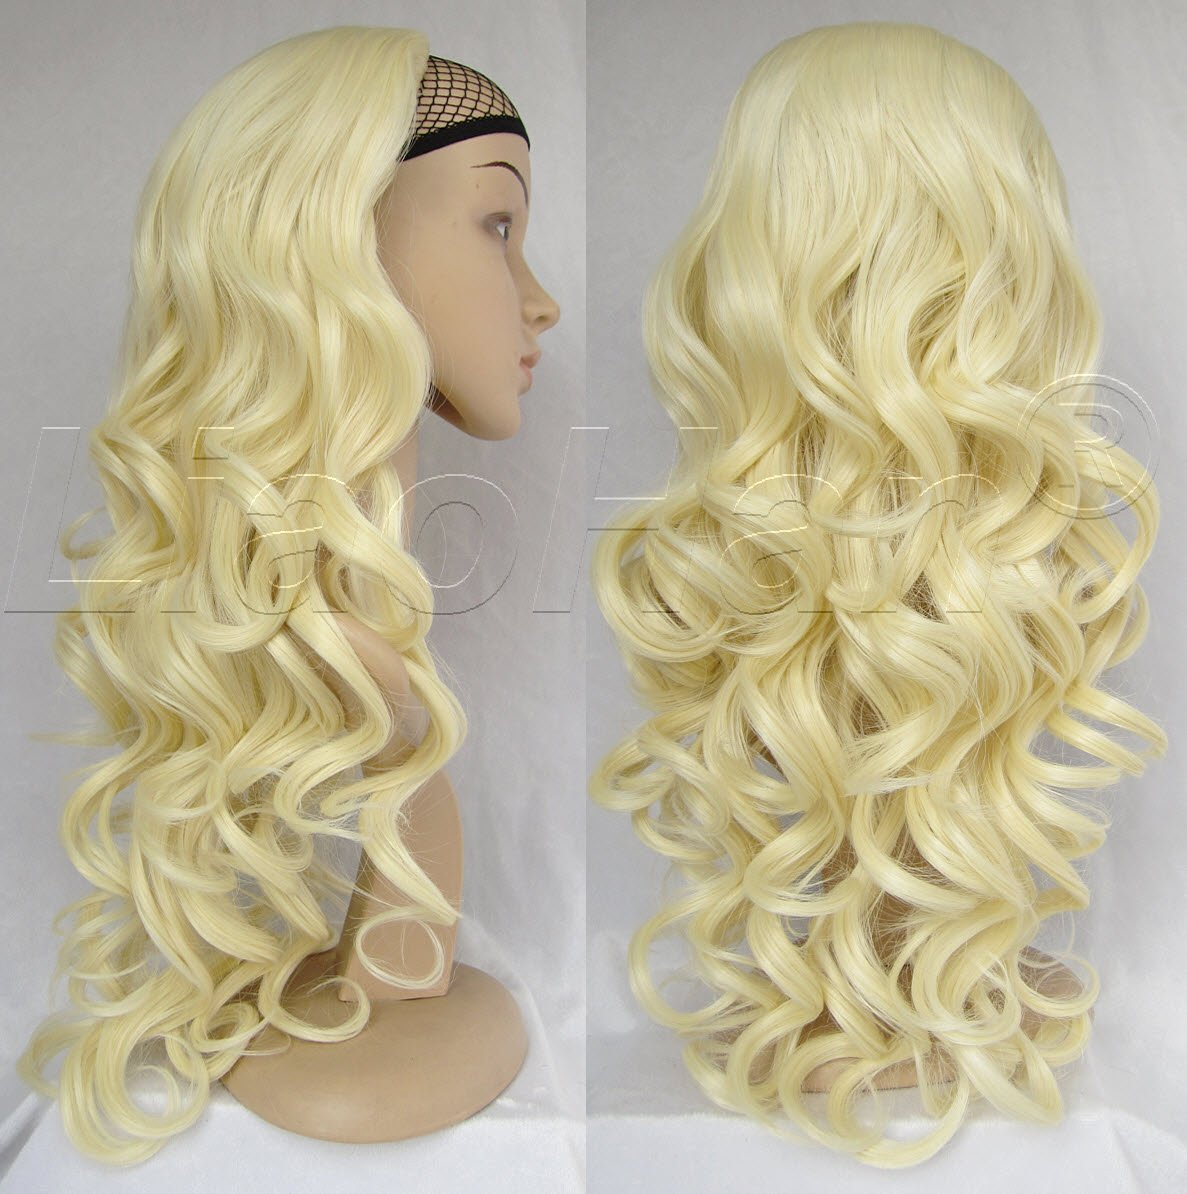 Buy Liaohan Bleach Blonde Wig Synthetic Half Wig Hair Fall Long